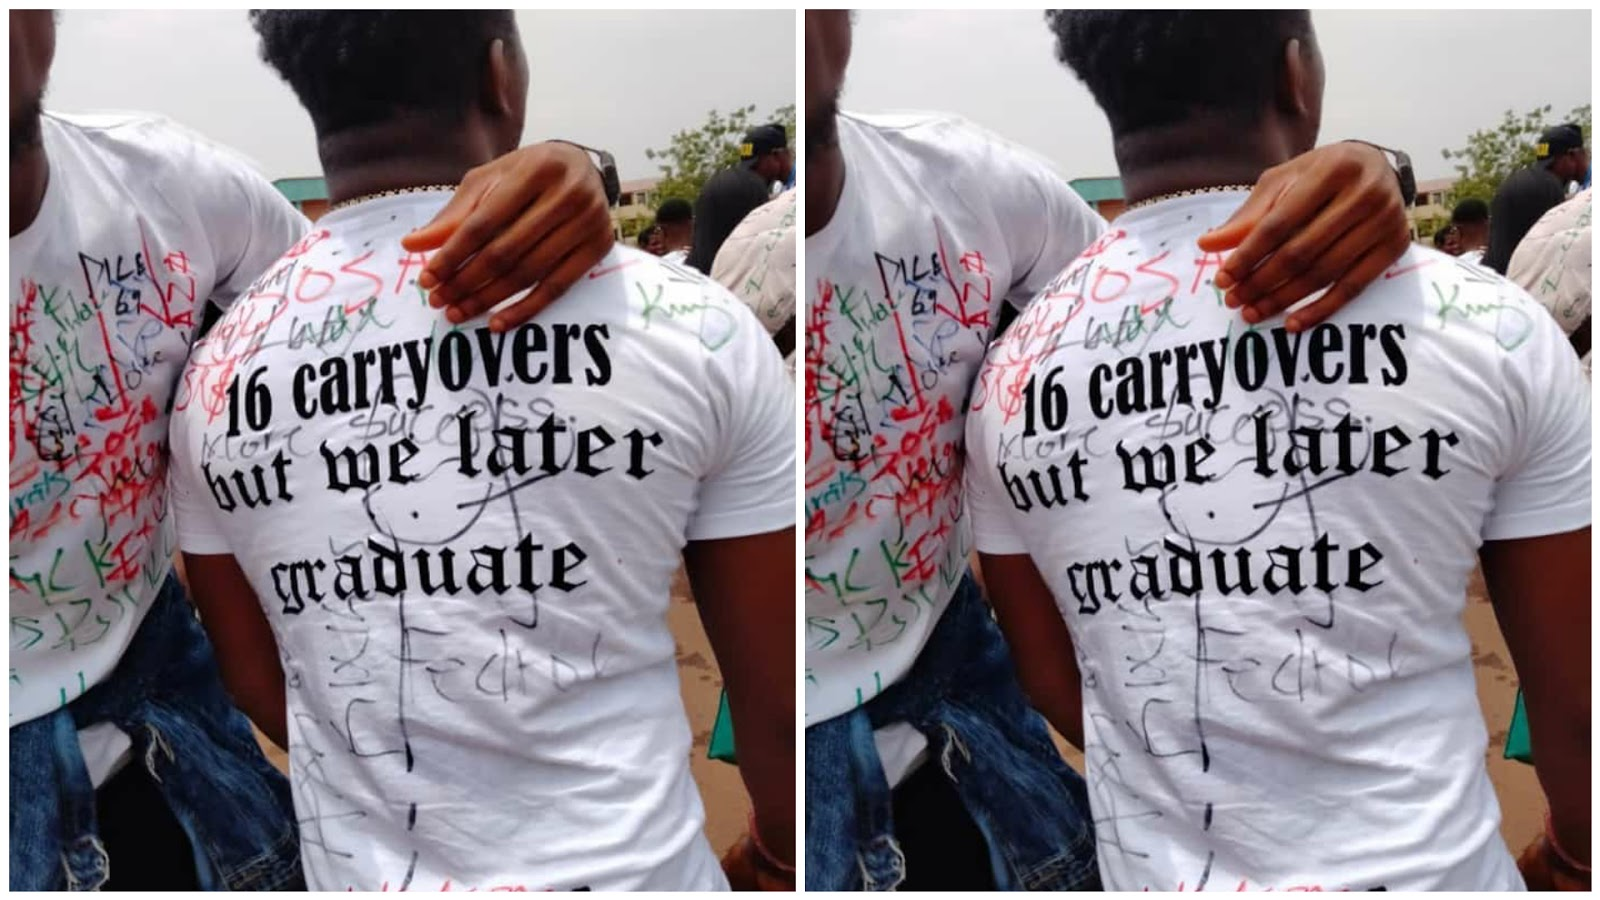 Nigerian Polytechnic graduate rejoices after facing 16 carry-overs